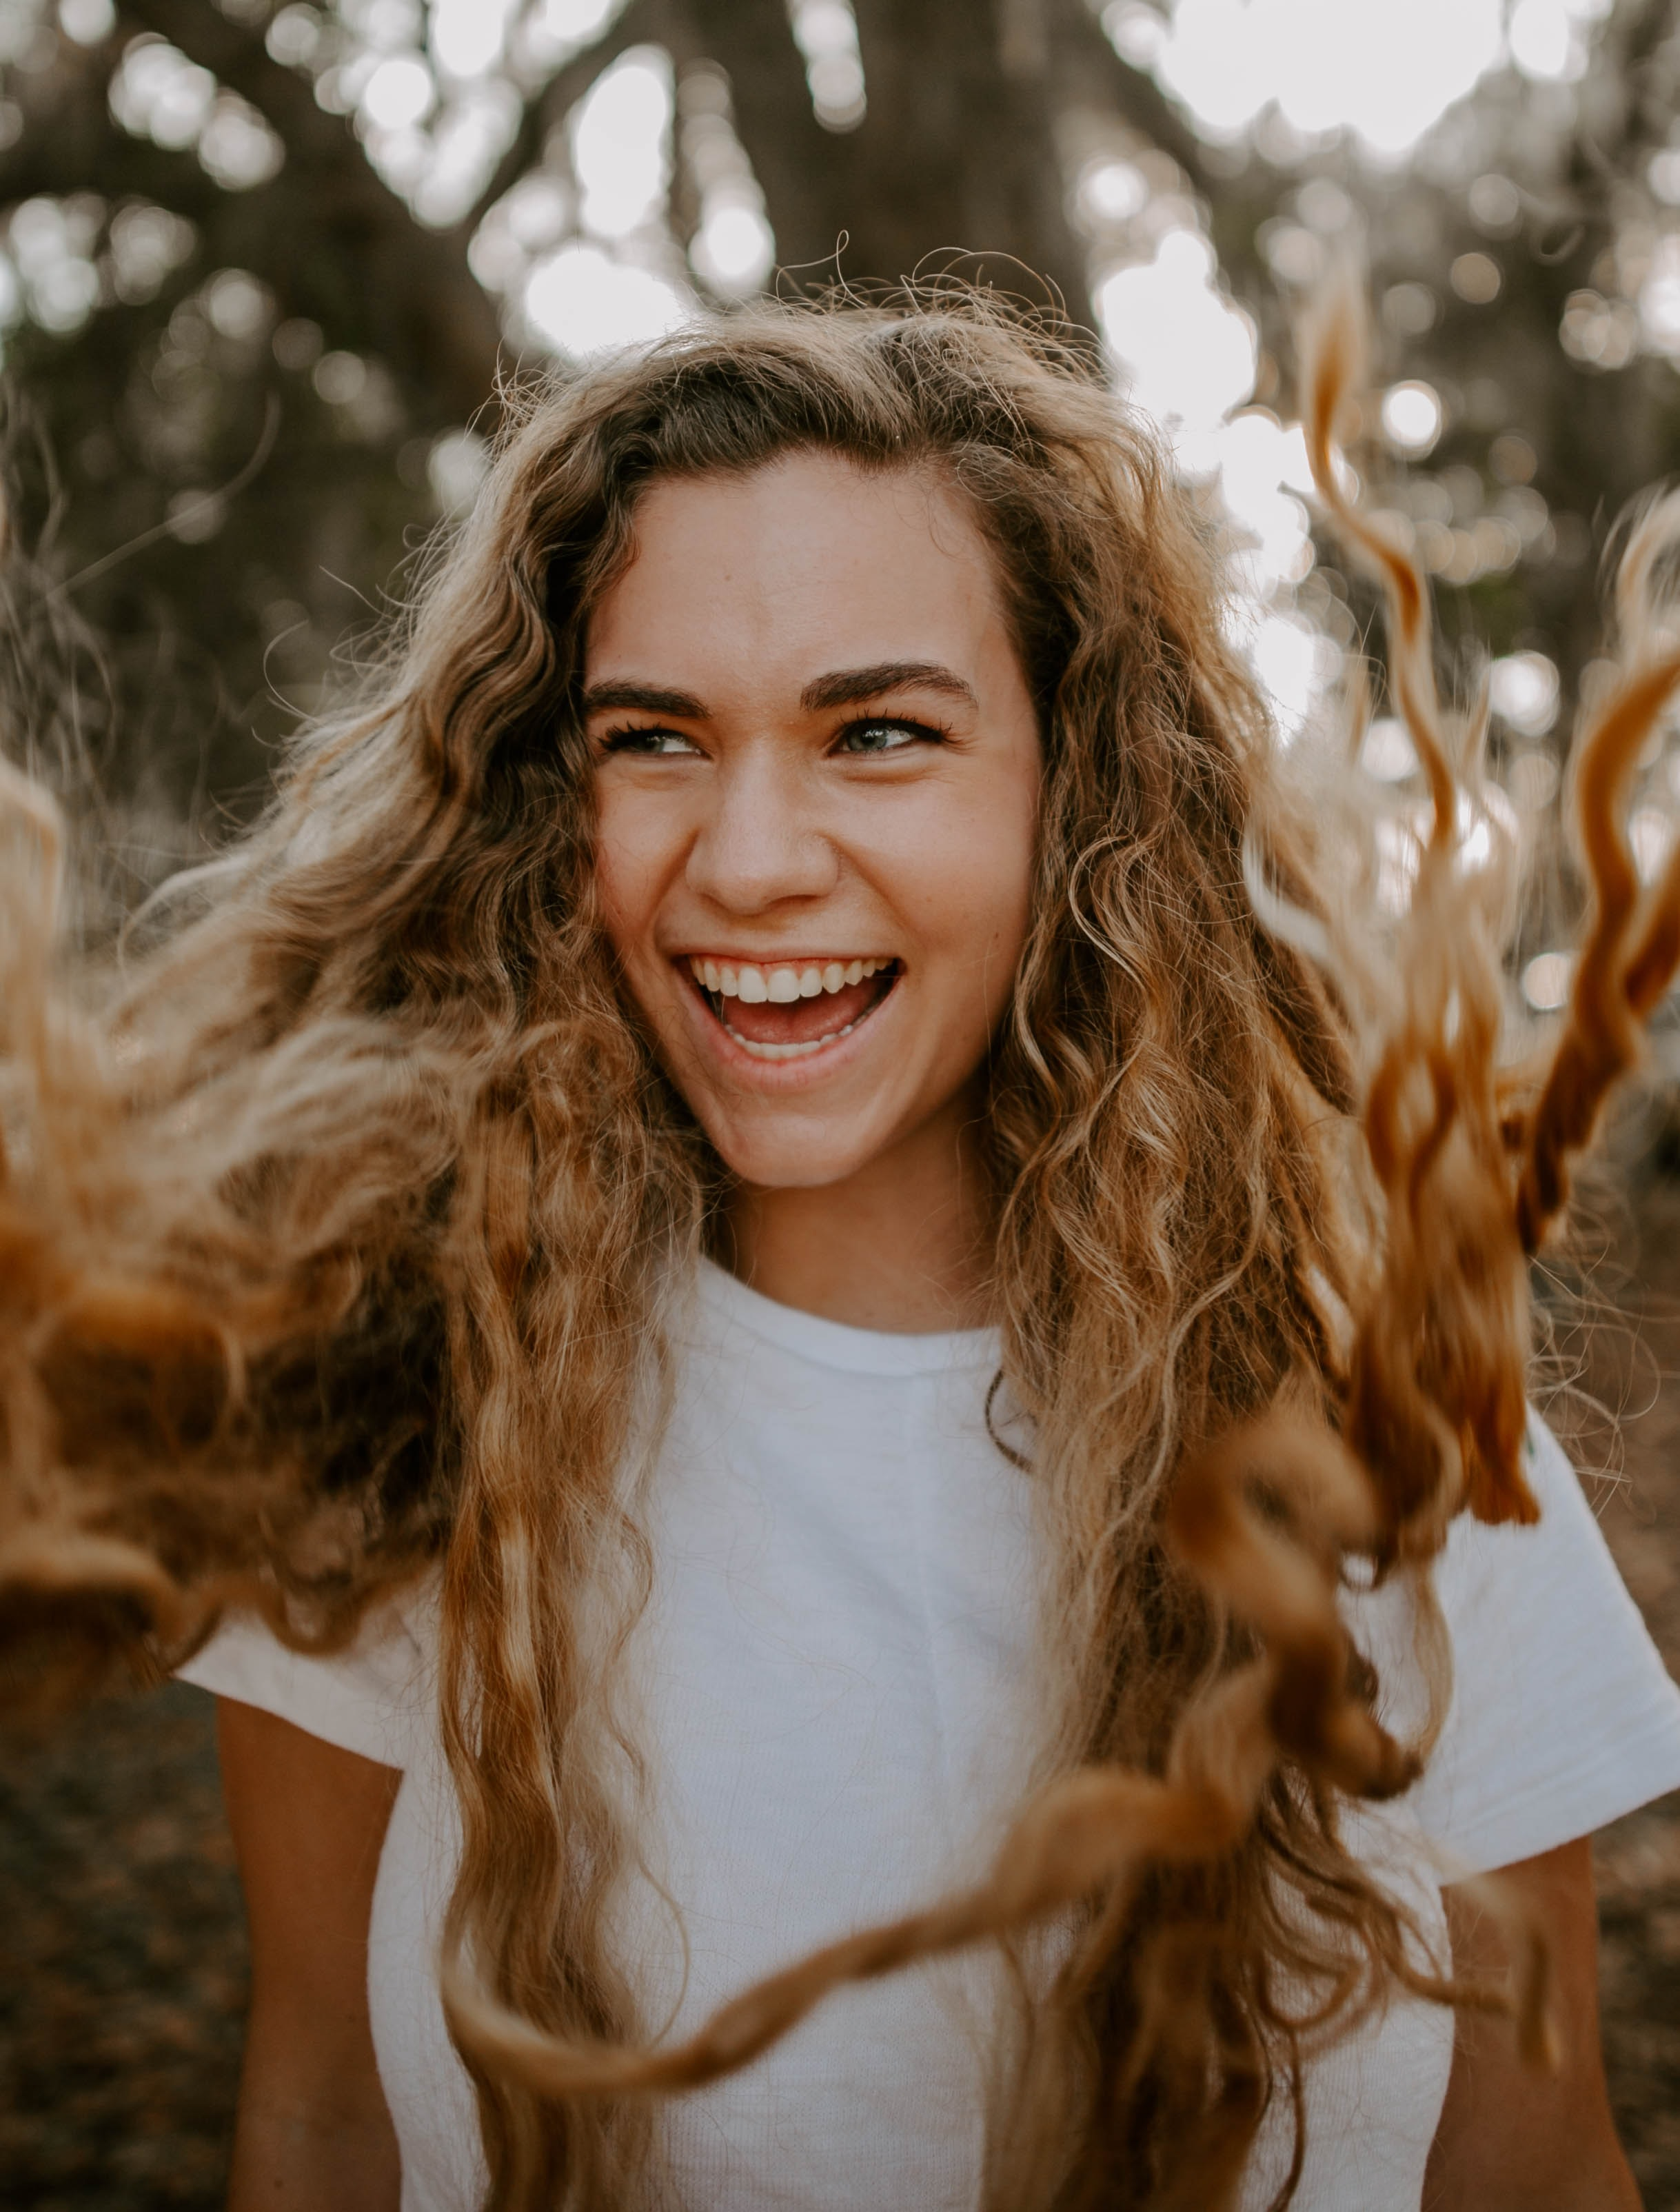 selective focus photo of laughing girl wearing white crew-neck shirt